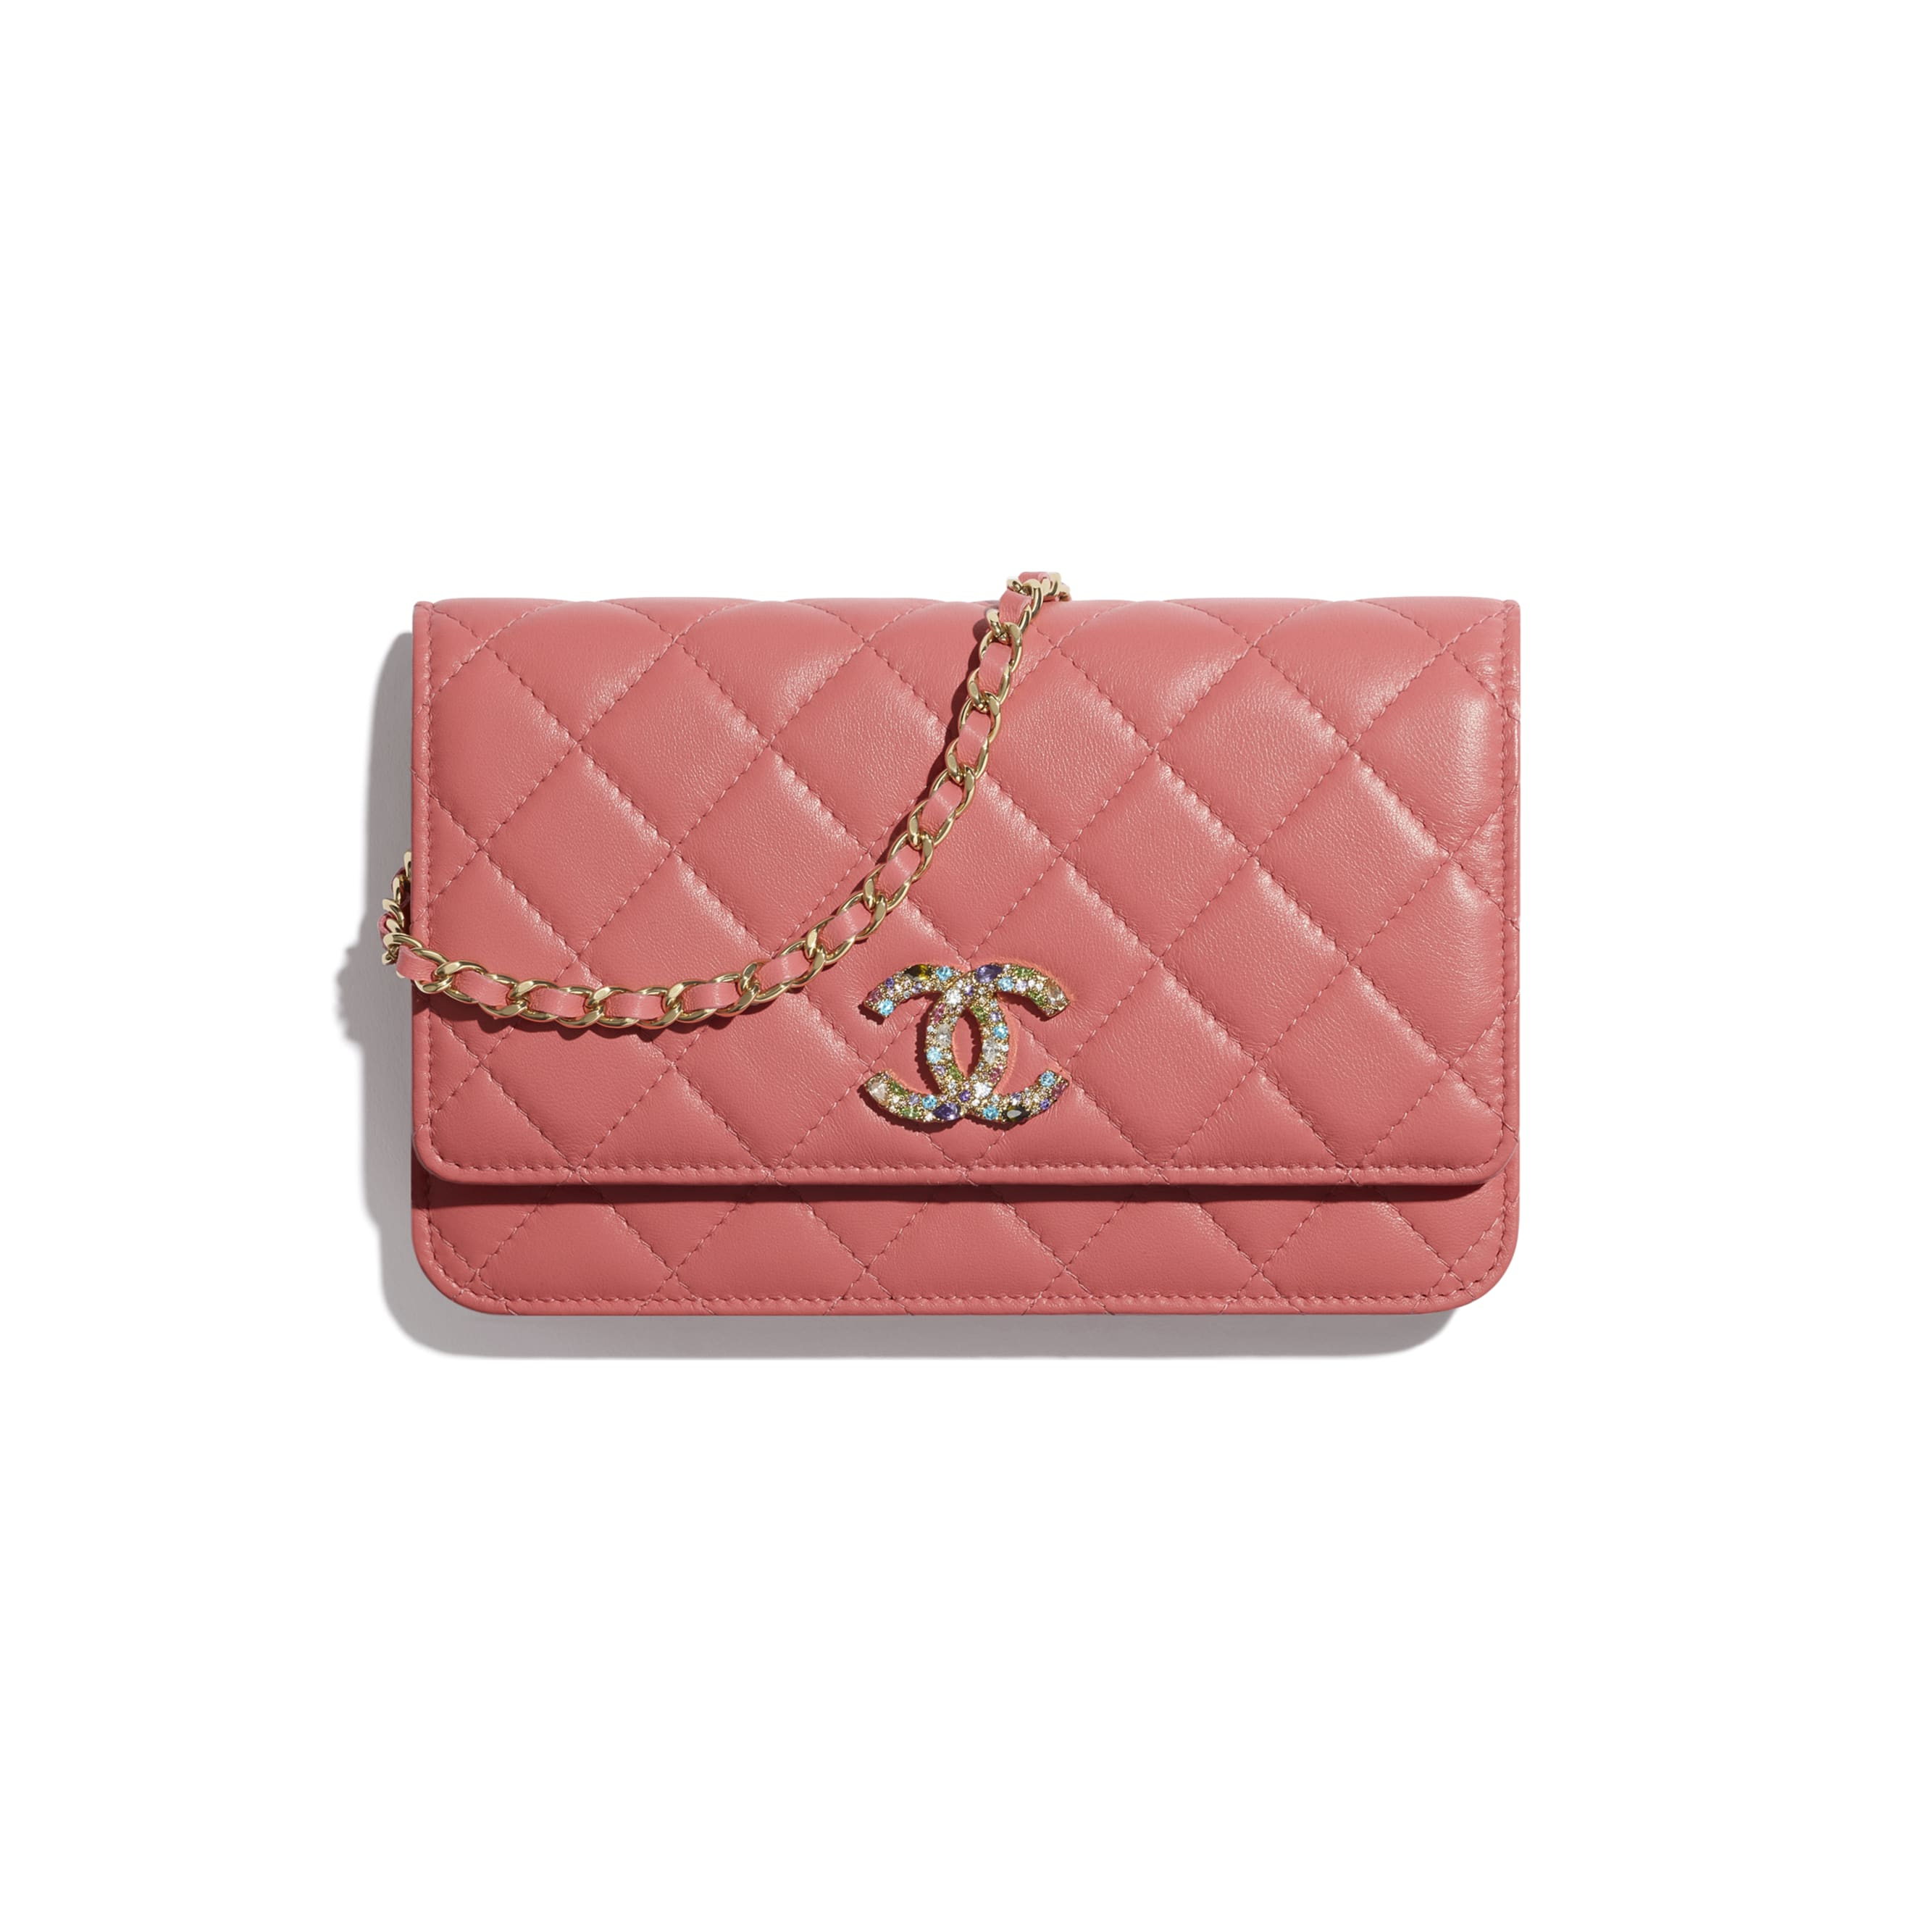 Wallet On Chain - Coral - Lambskin, Zirconium & Gold-Tone Metal - CHANEL - Default view - see standard sized version